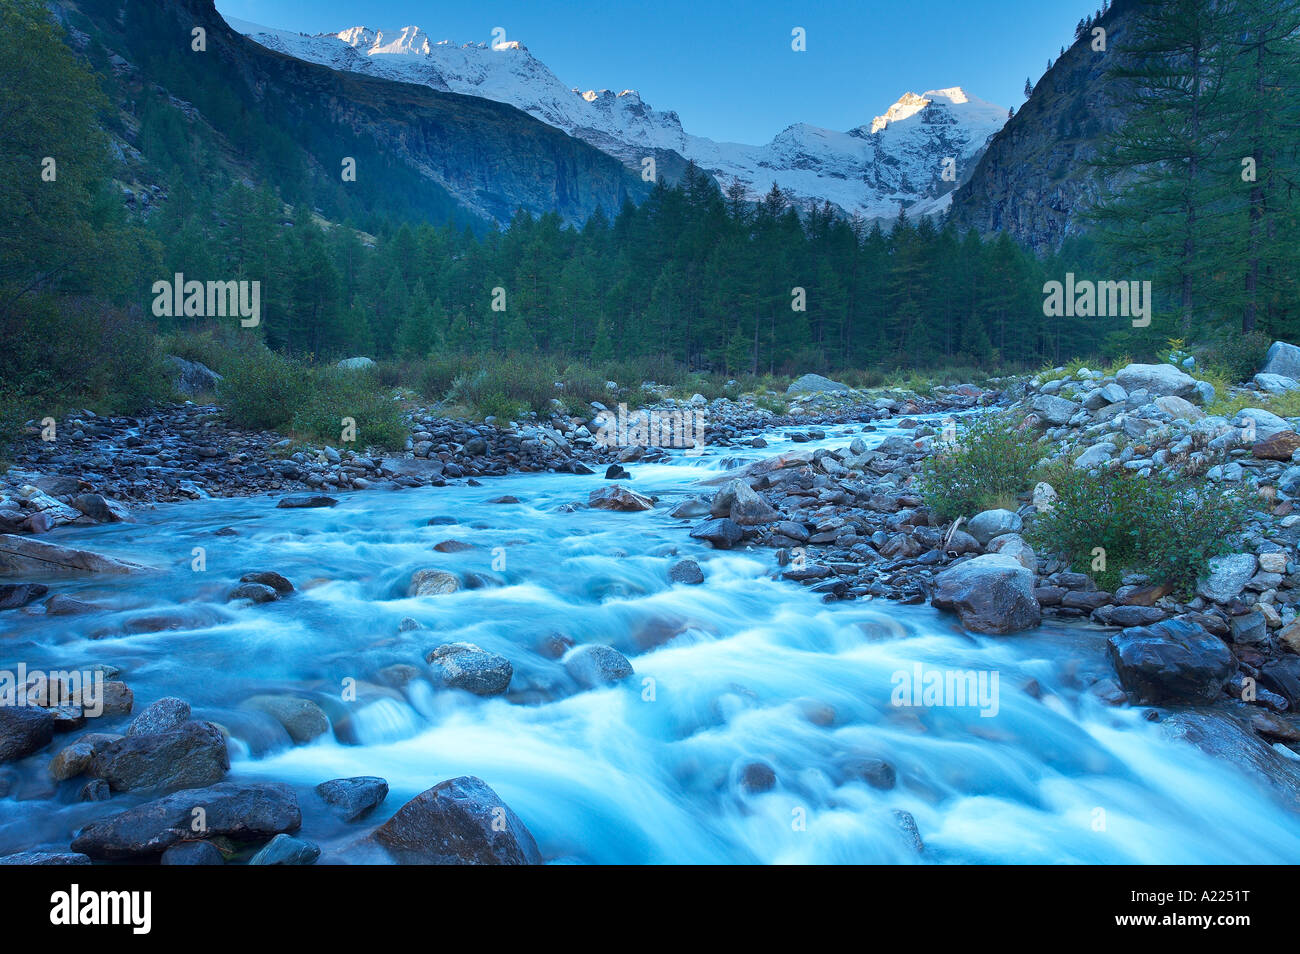 River in the Valnontey with the snow clad peaks of the Parco Nazionale del Gran Paradiso Valle d Aosta Italy NR - Stock Image